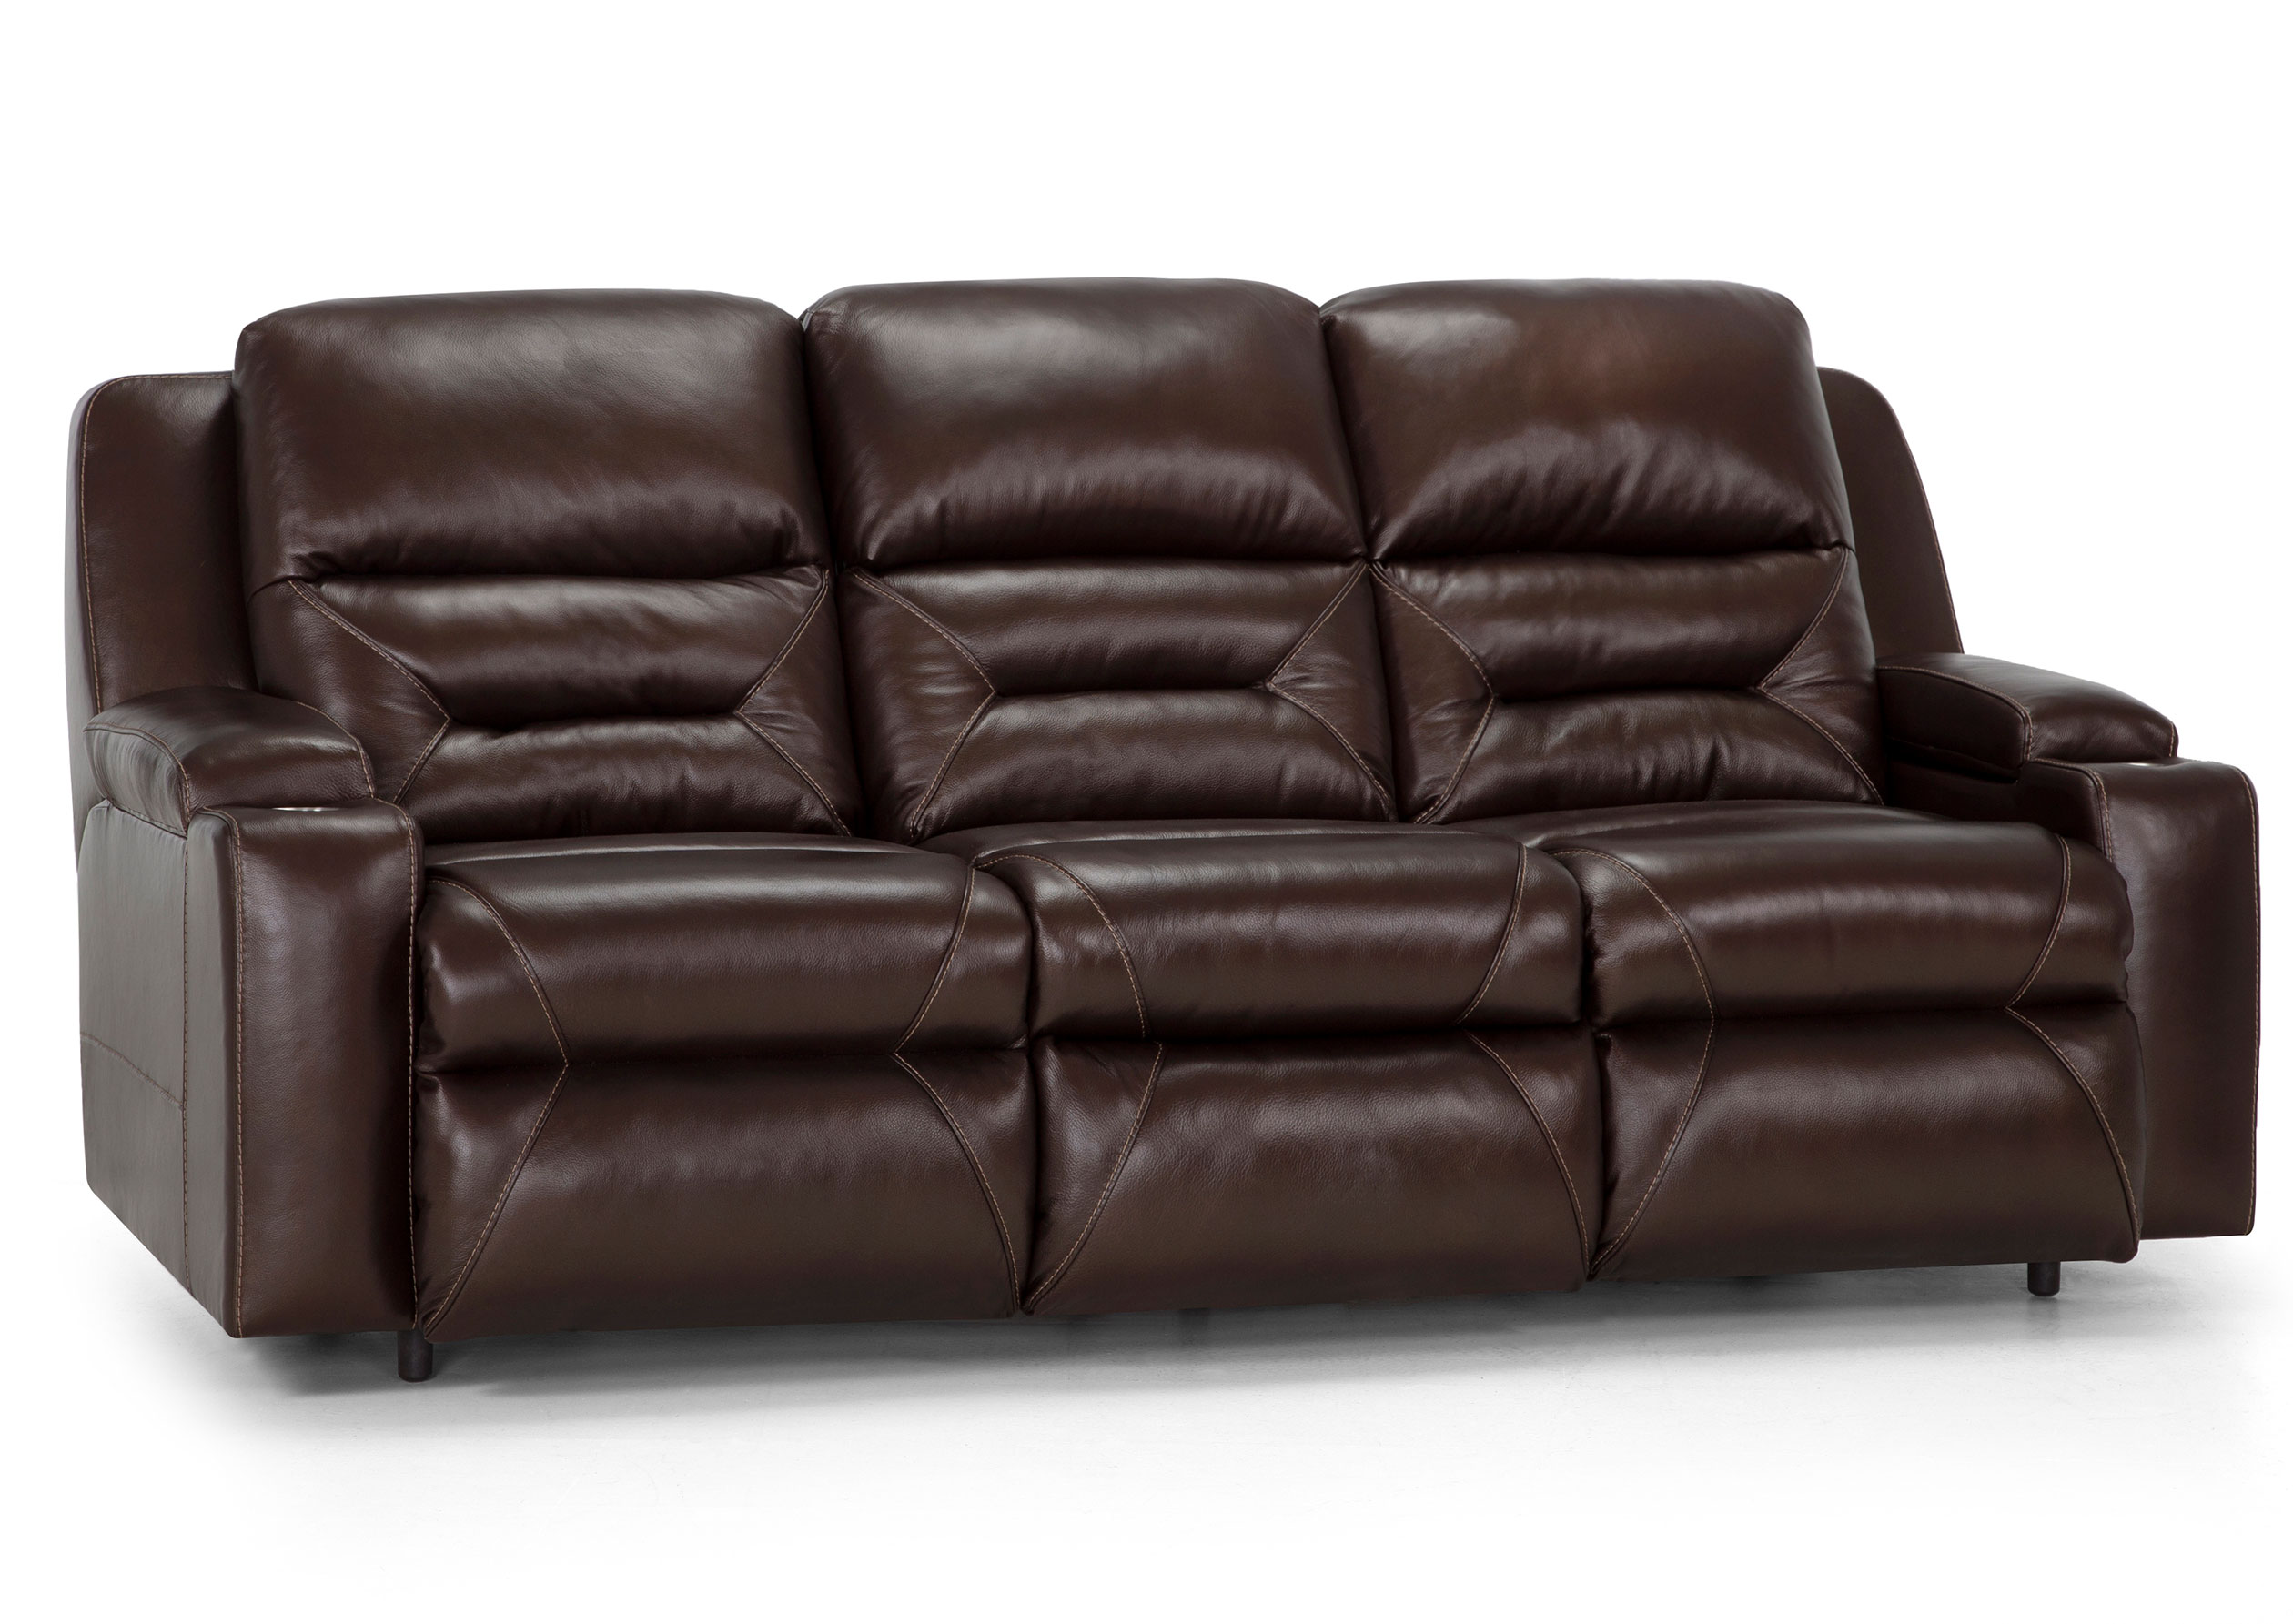 Beacon Leather Reclining Sofa W Power Recline Sofas And